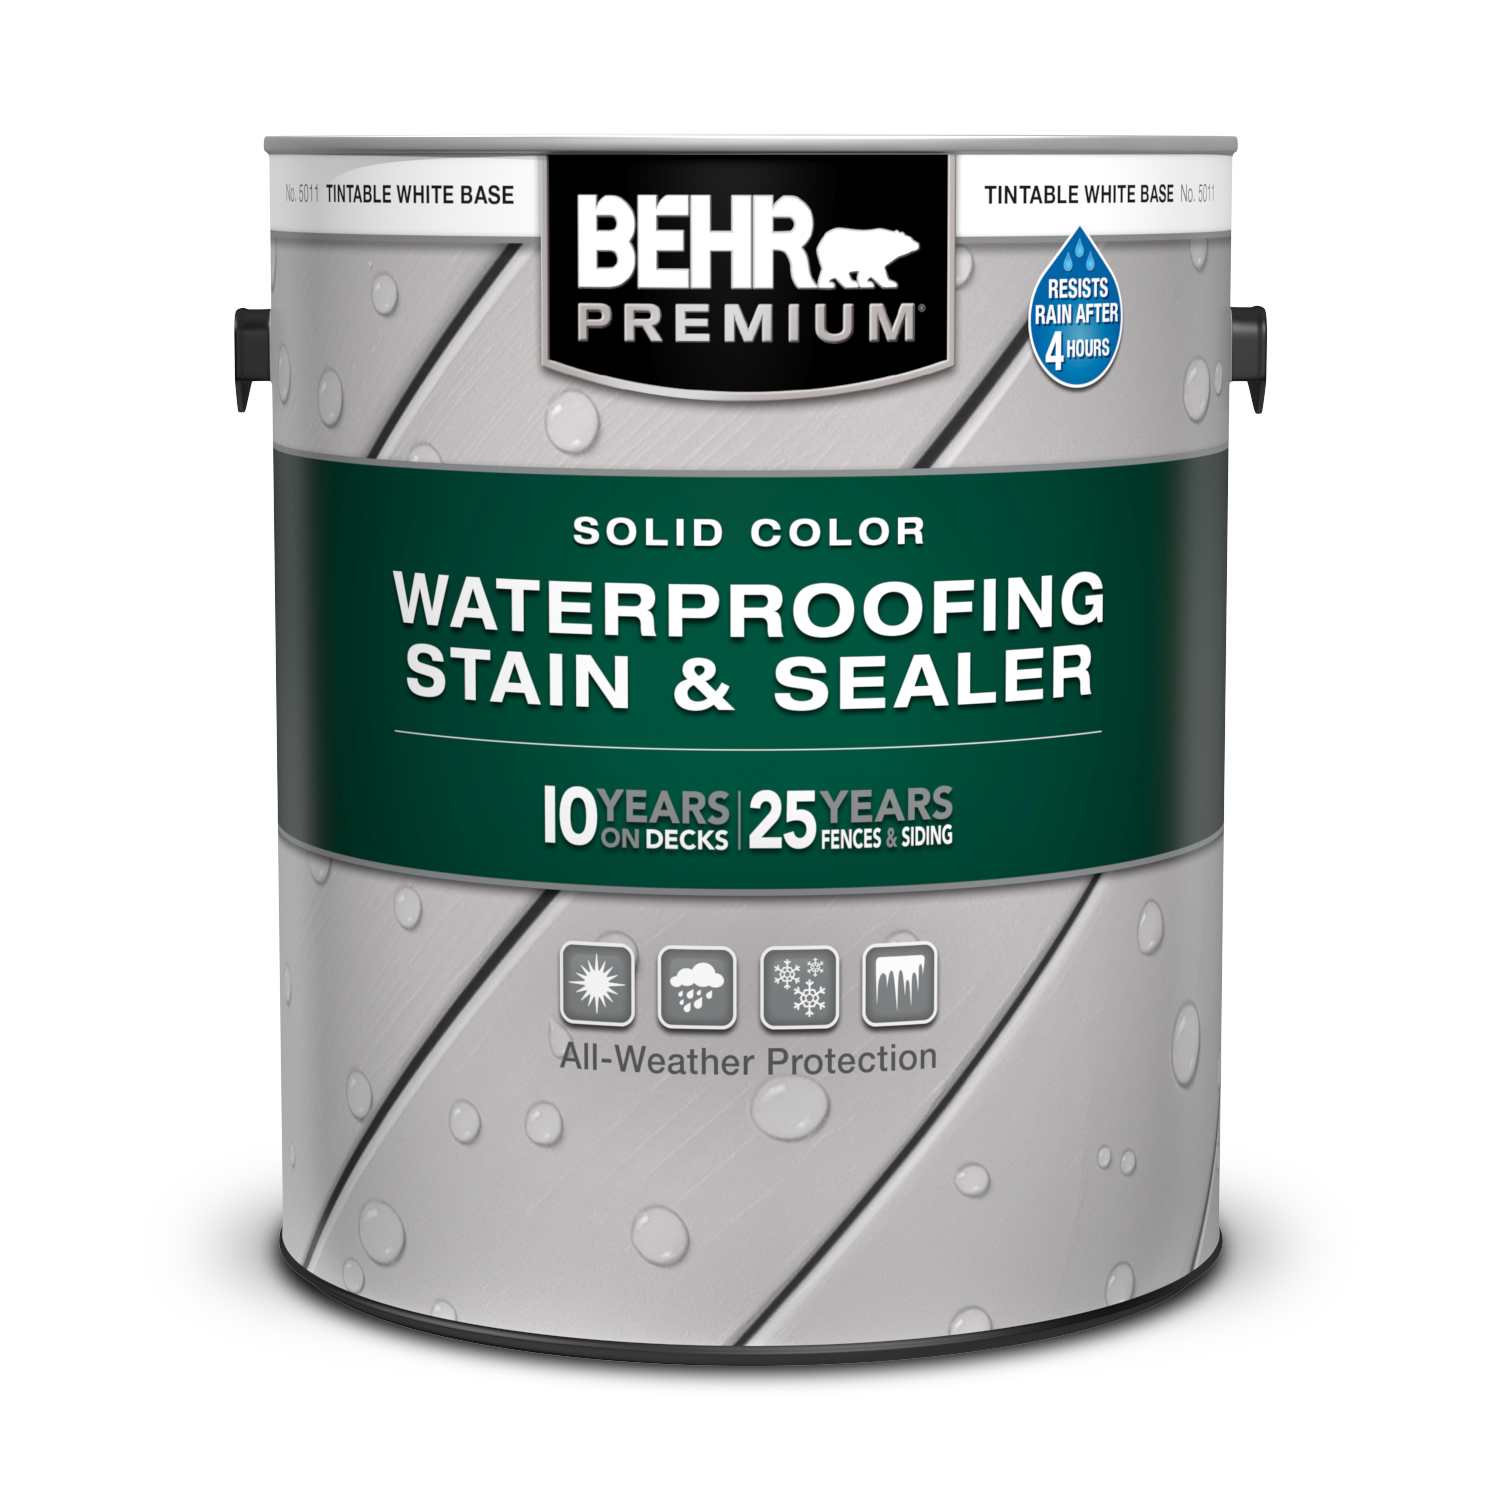 Solid Color Waterproofing Wood Stain & Sealer | BEHR PREMIUM